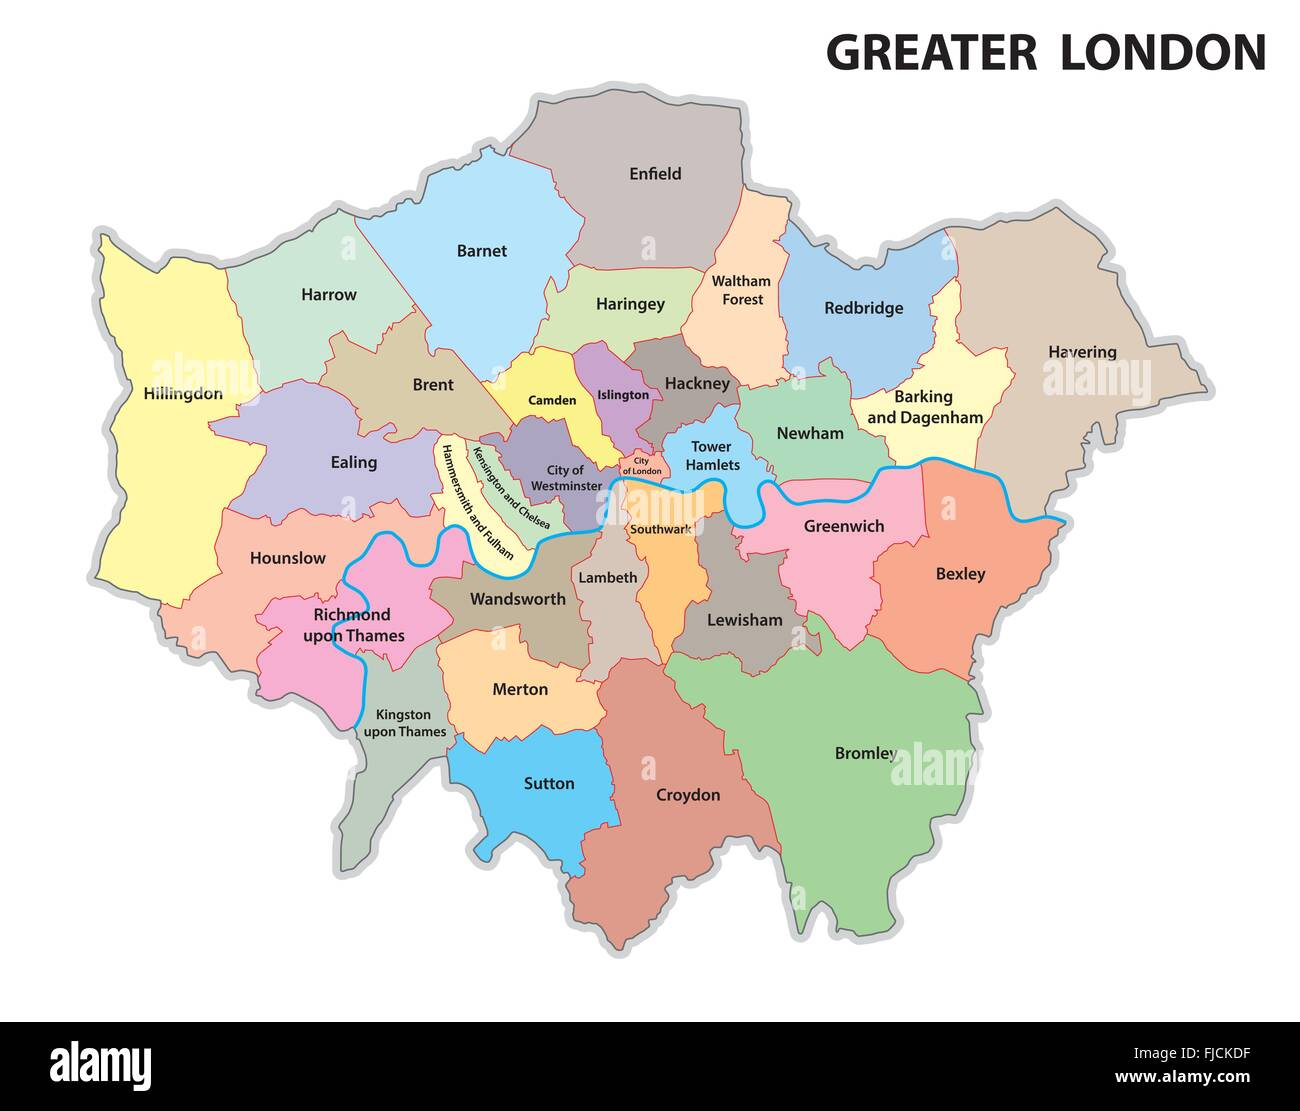 greater london administrative map Stock Vector Art & Illustration